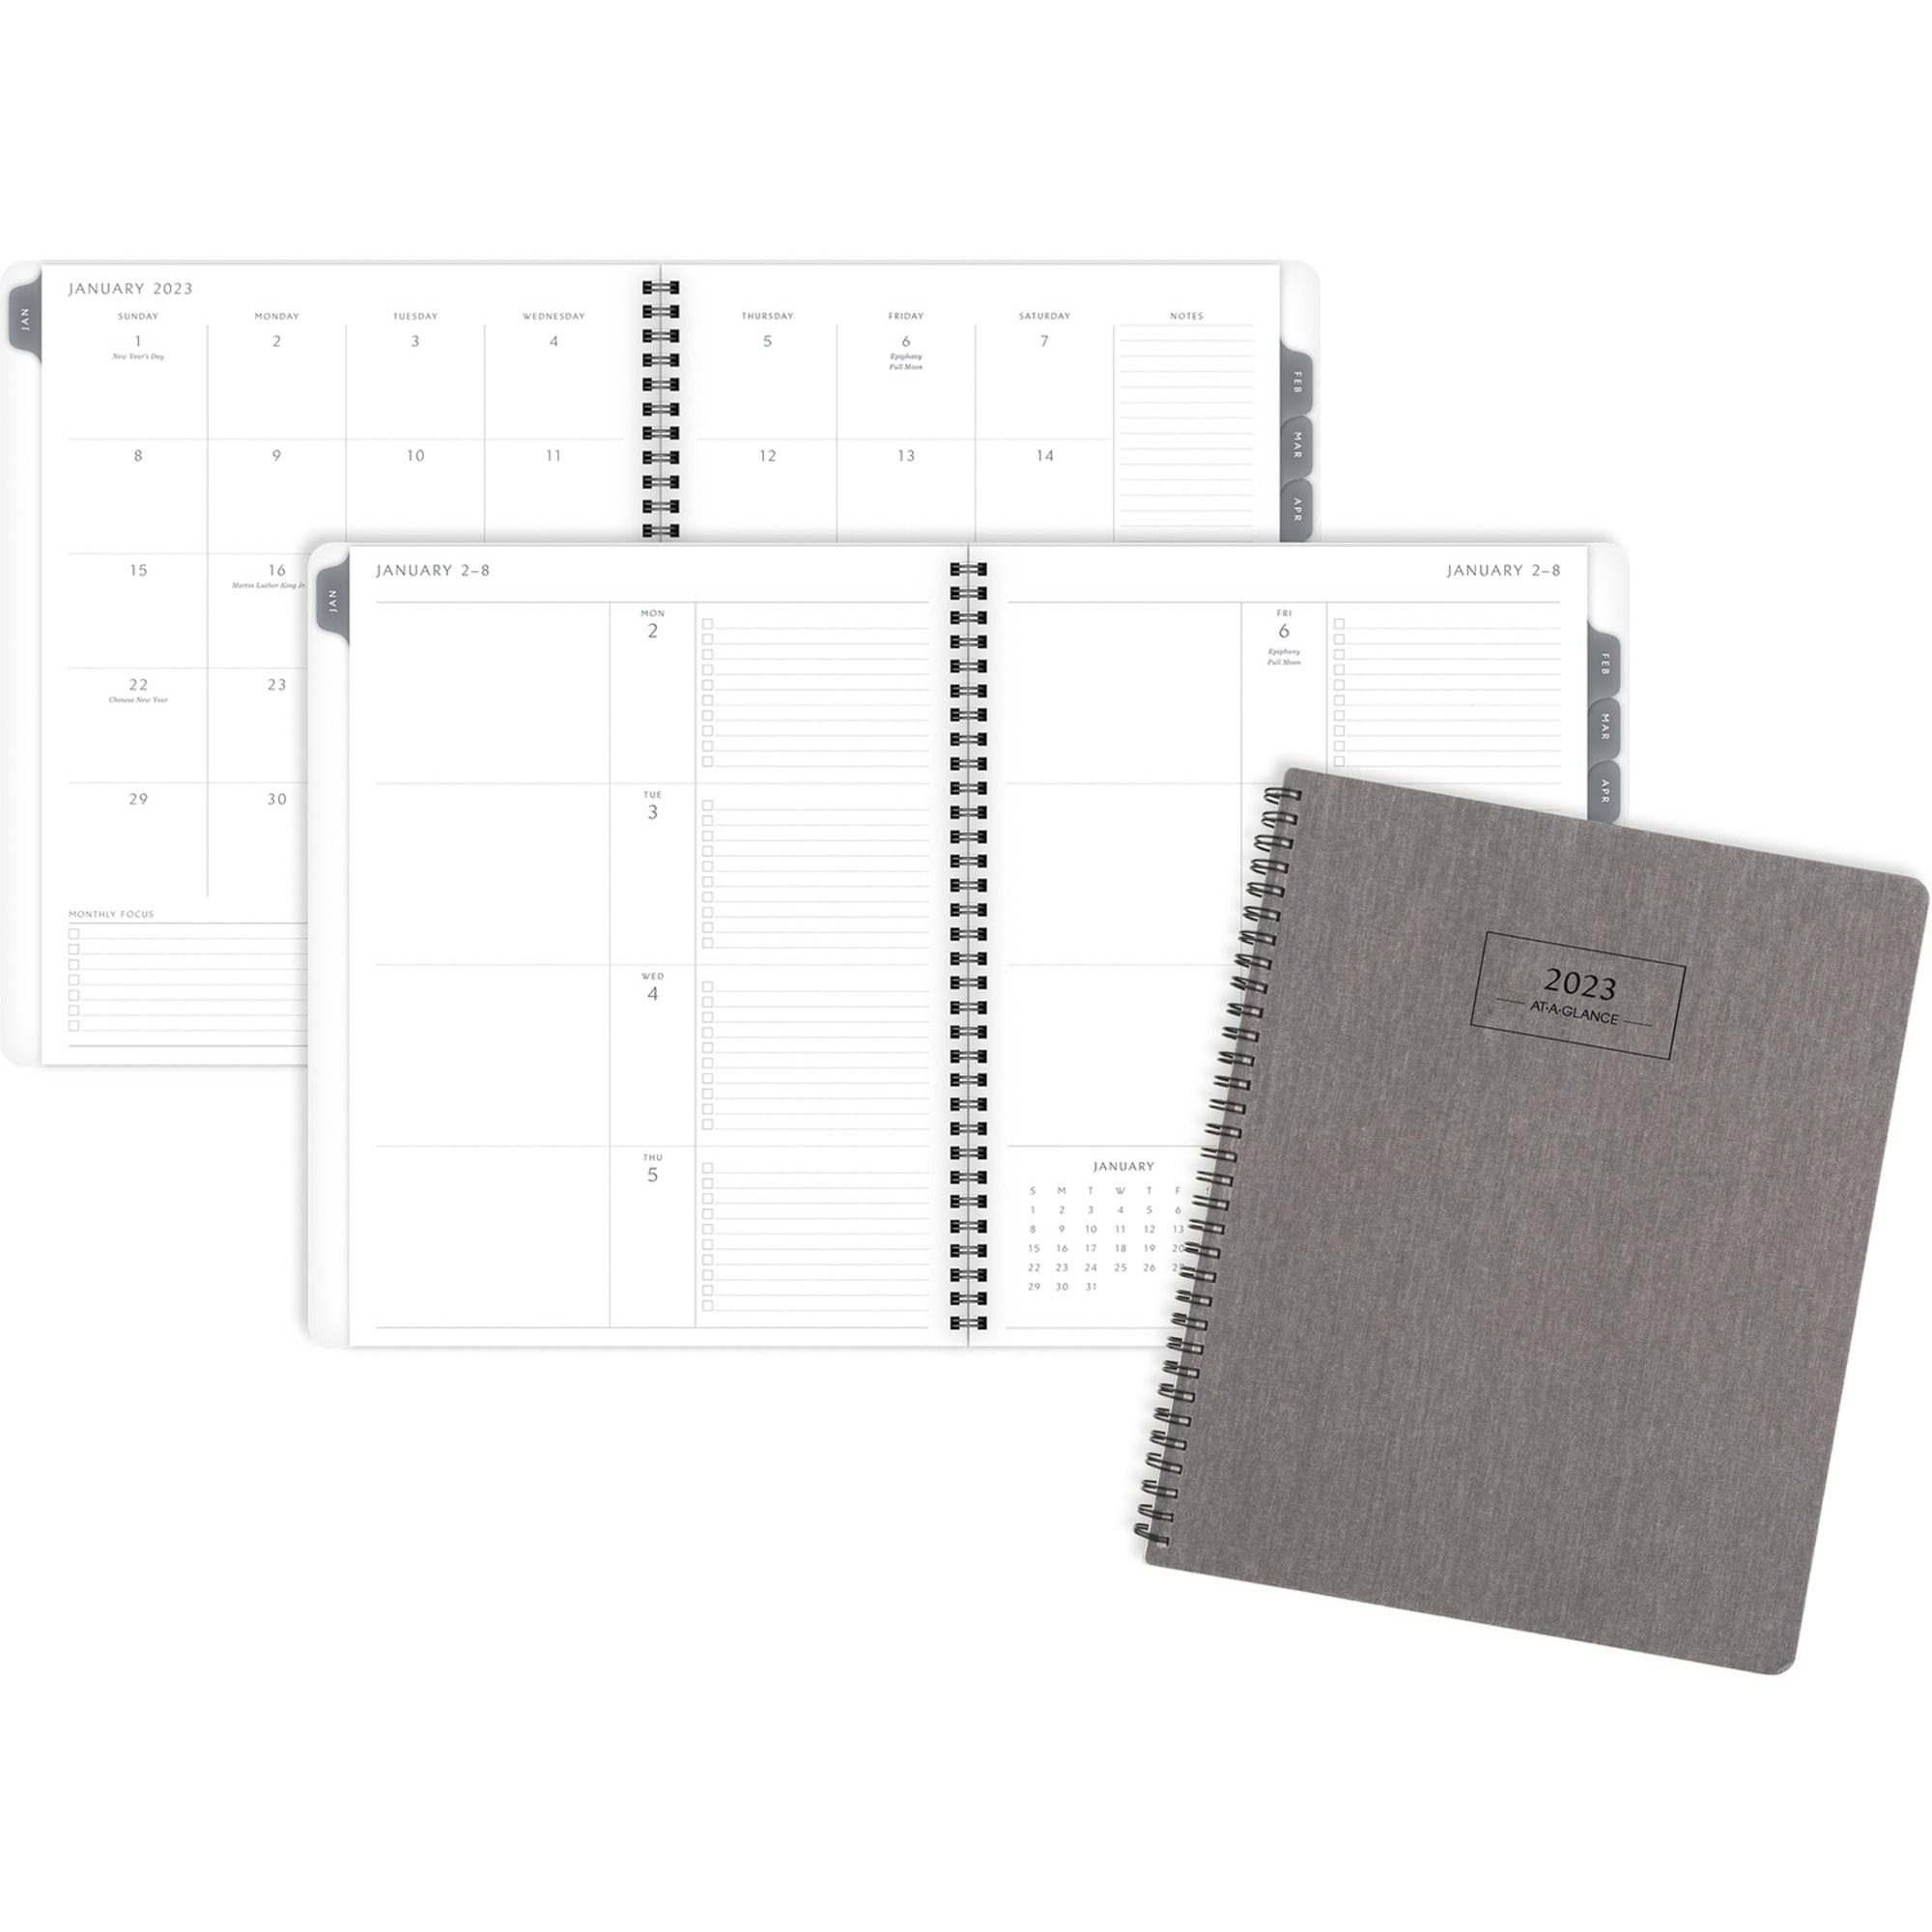 At-A-Glance Elevation Weekly/Monthly Planner - Medium Size - Monthly, Weekly - 1 Year - January 2021 till December 2021 - White Sheet - Twin Wire - Paper - Gray - Durable Cover, Sturdy, Bleed Resistant Paper, Tear Resistant, Non-refillable, Reminder Secti